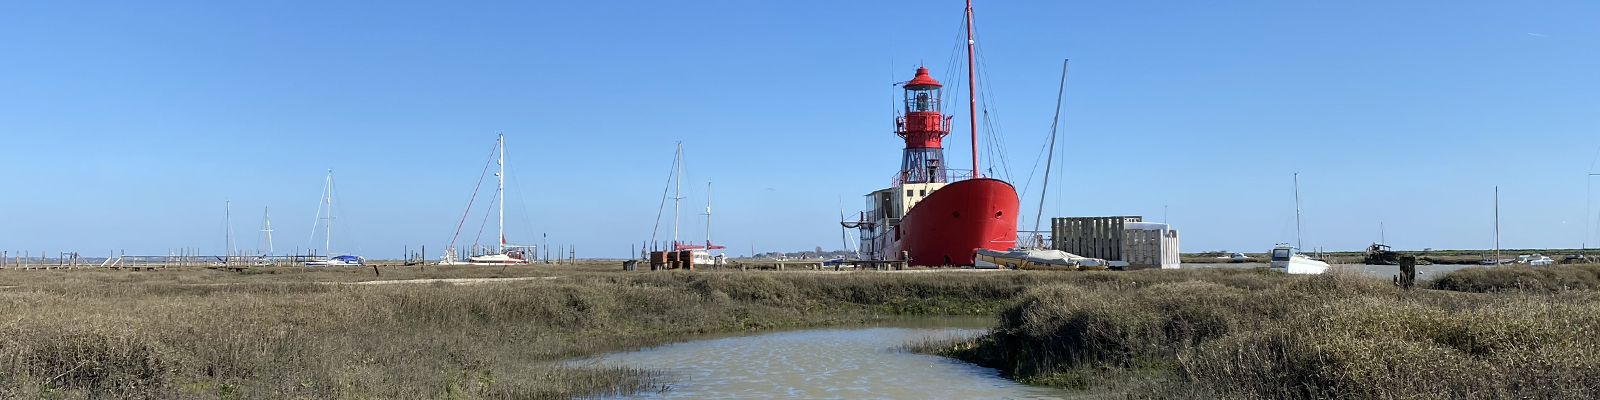 Tollesbury Parish Council, Agendas And Minutes, View Of The Lightship From The Saltings